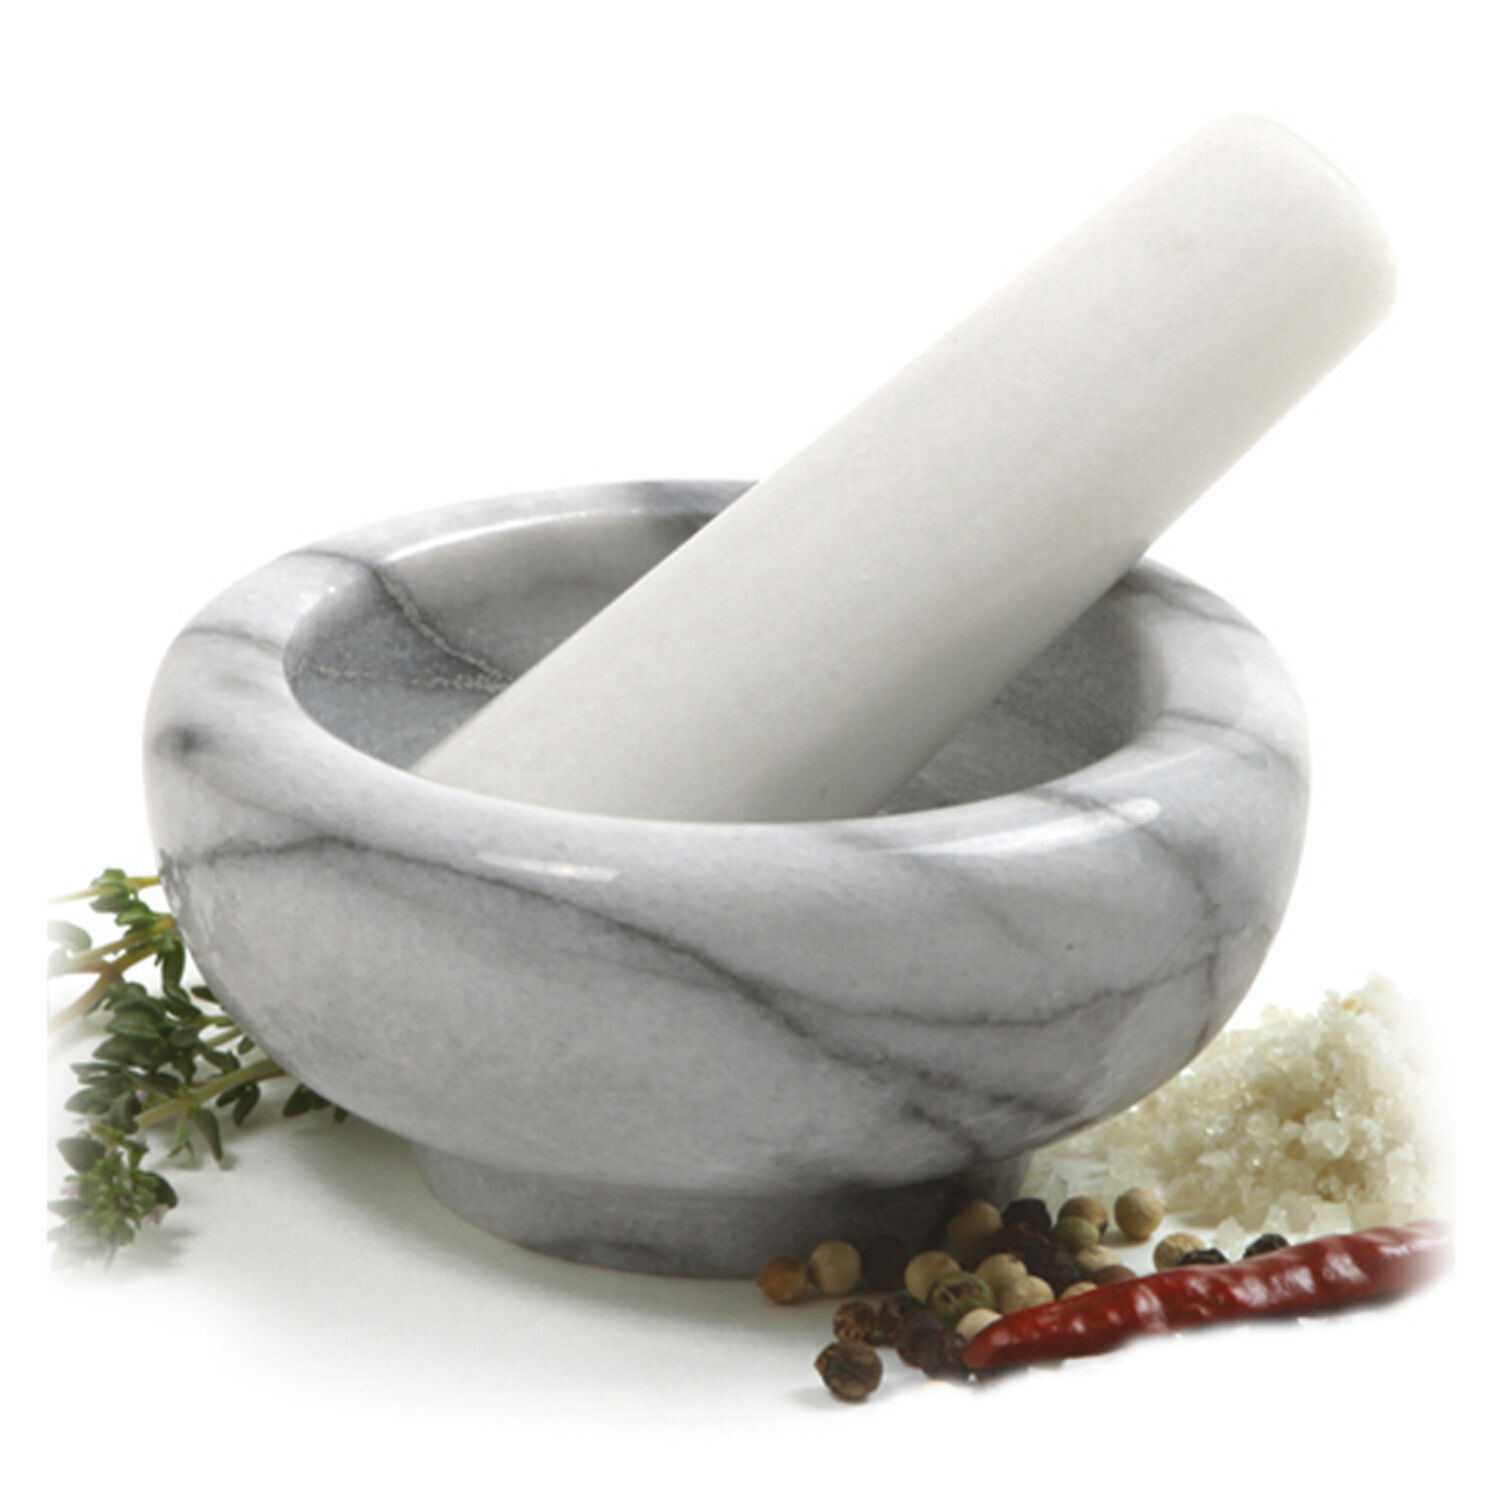 Norpro 693 Marble Mortar And Pestle on Sale